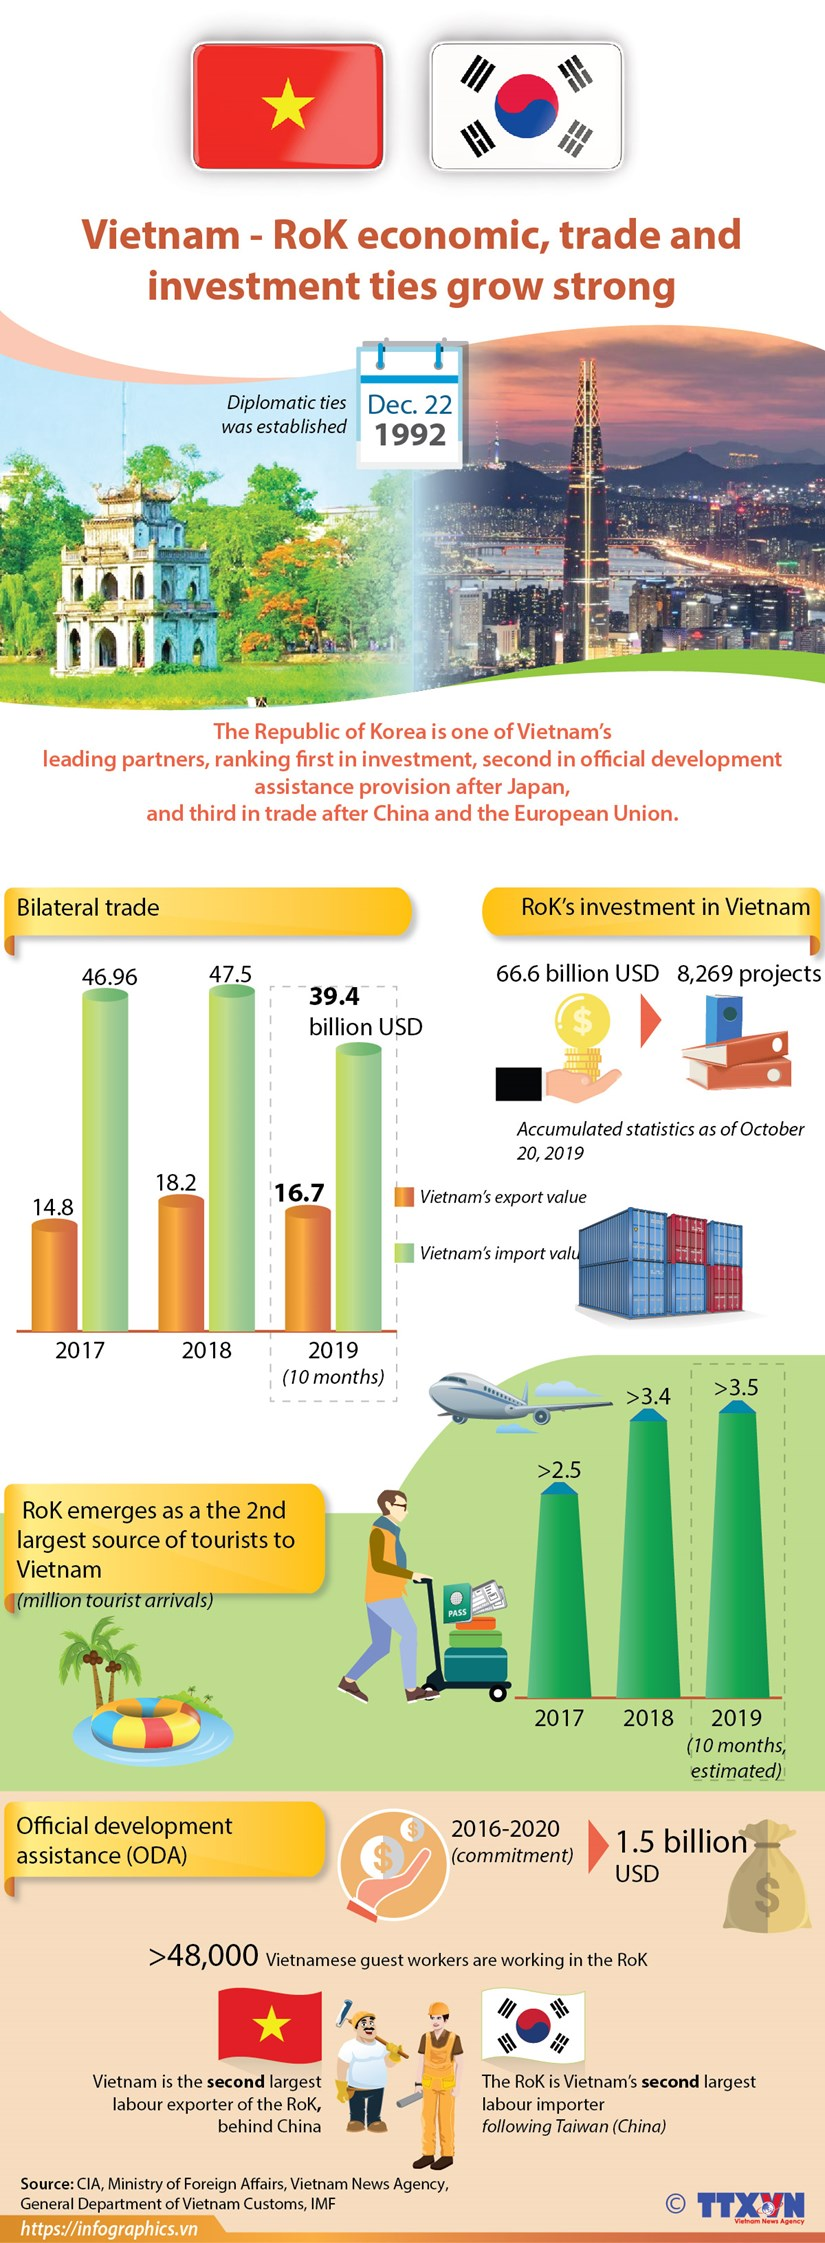 Vietnam - RoK economic, trade and investment ties grow strong hinh anh 1